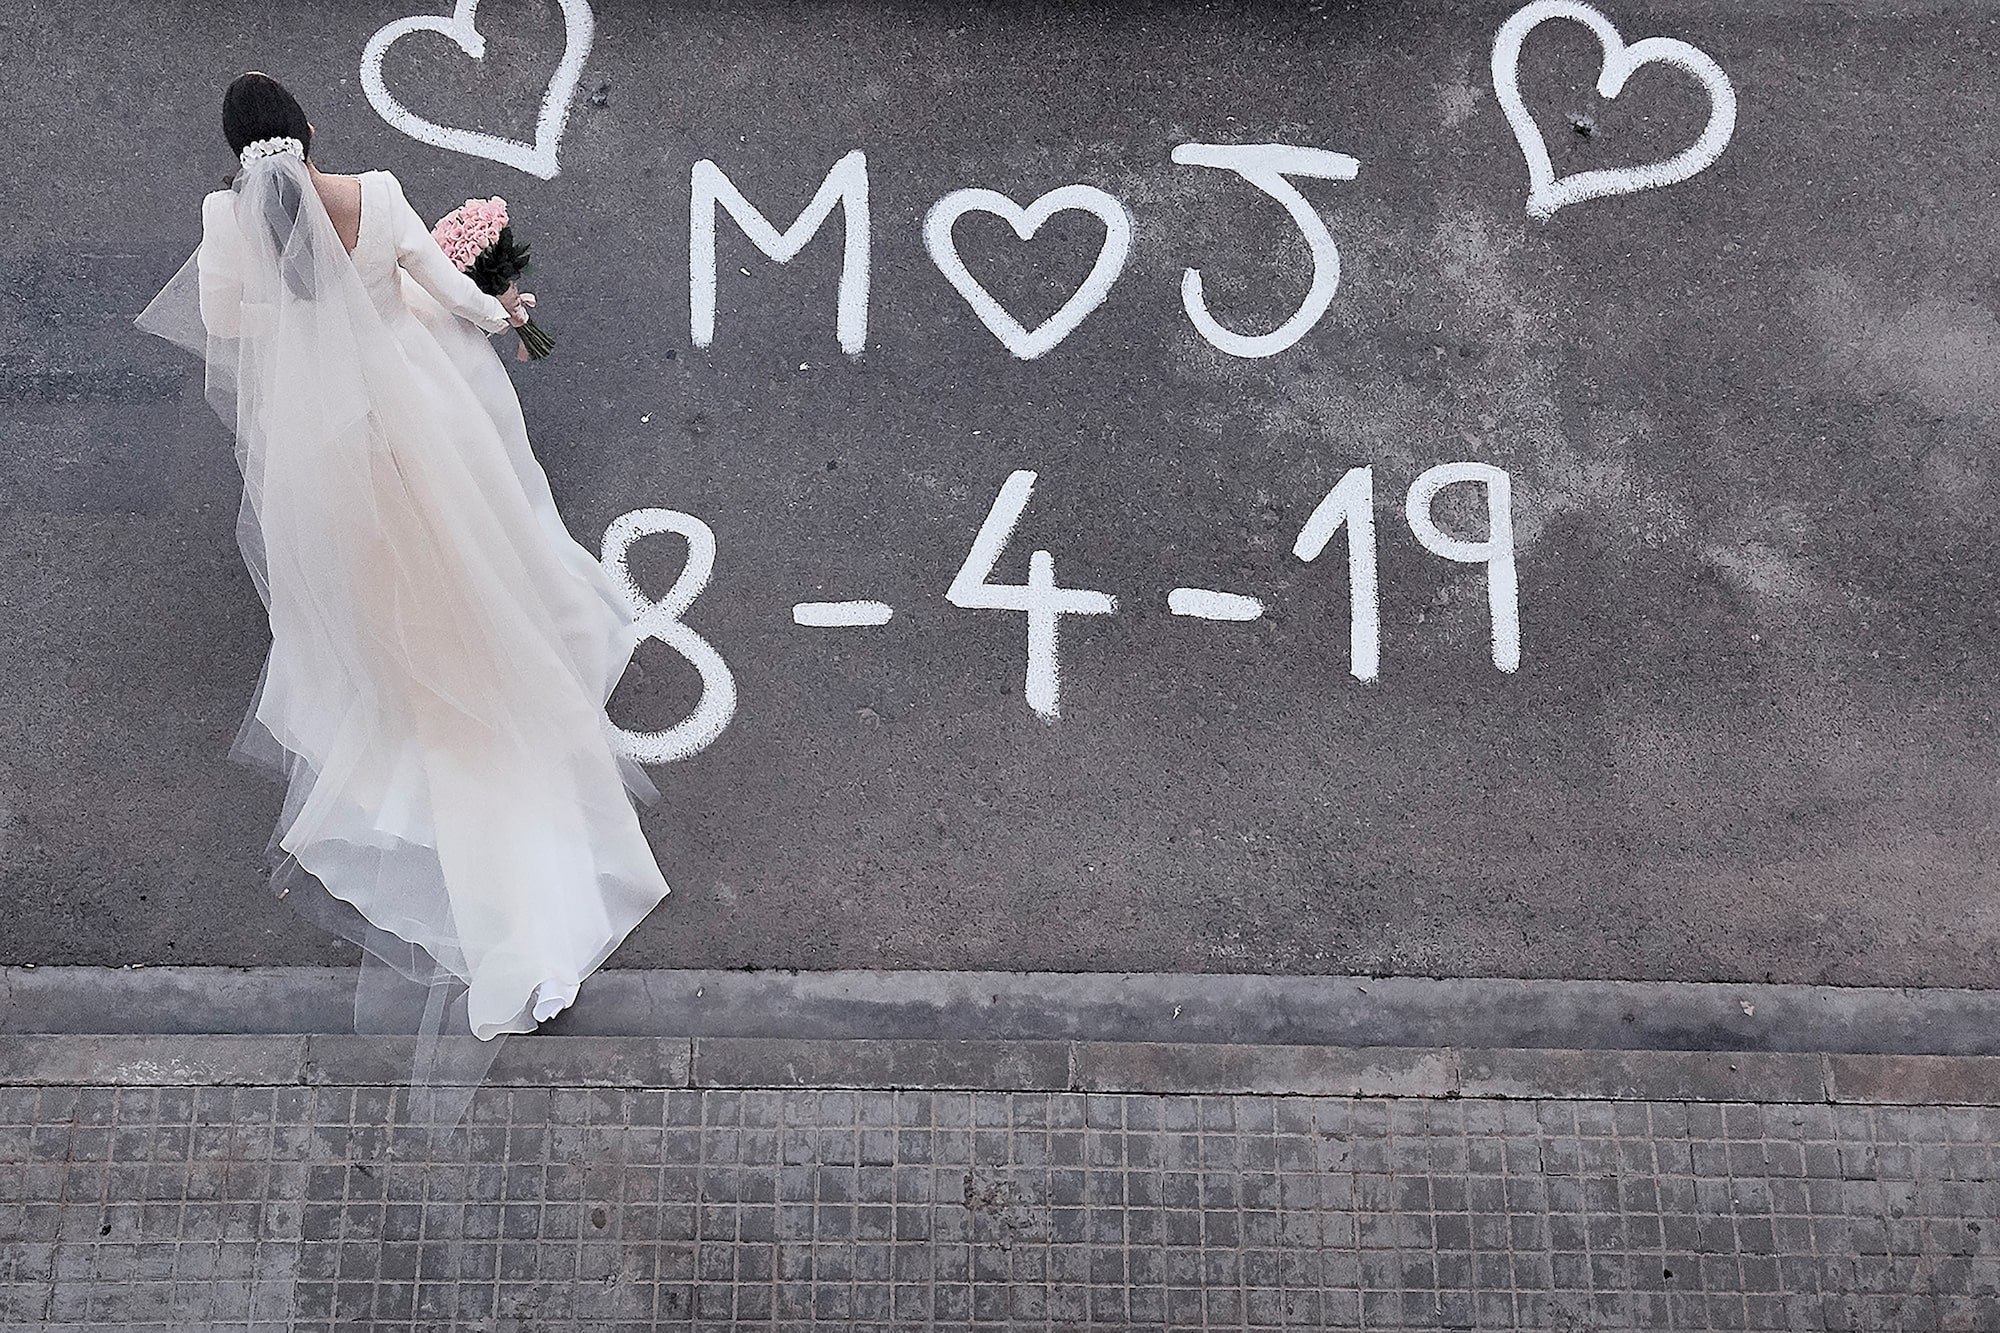 jorge miguel jaime baez sony RX0 birds eye shot of a bride crossing the road with the wedding date scrawled on the road